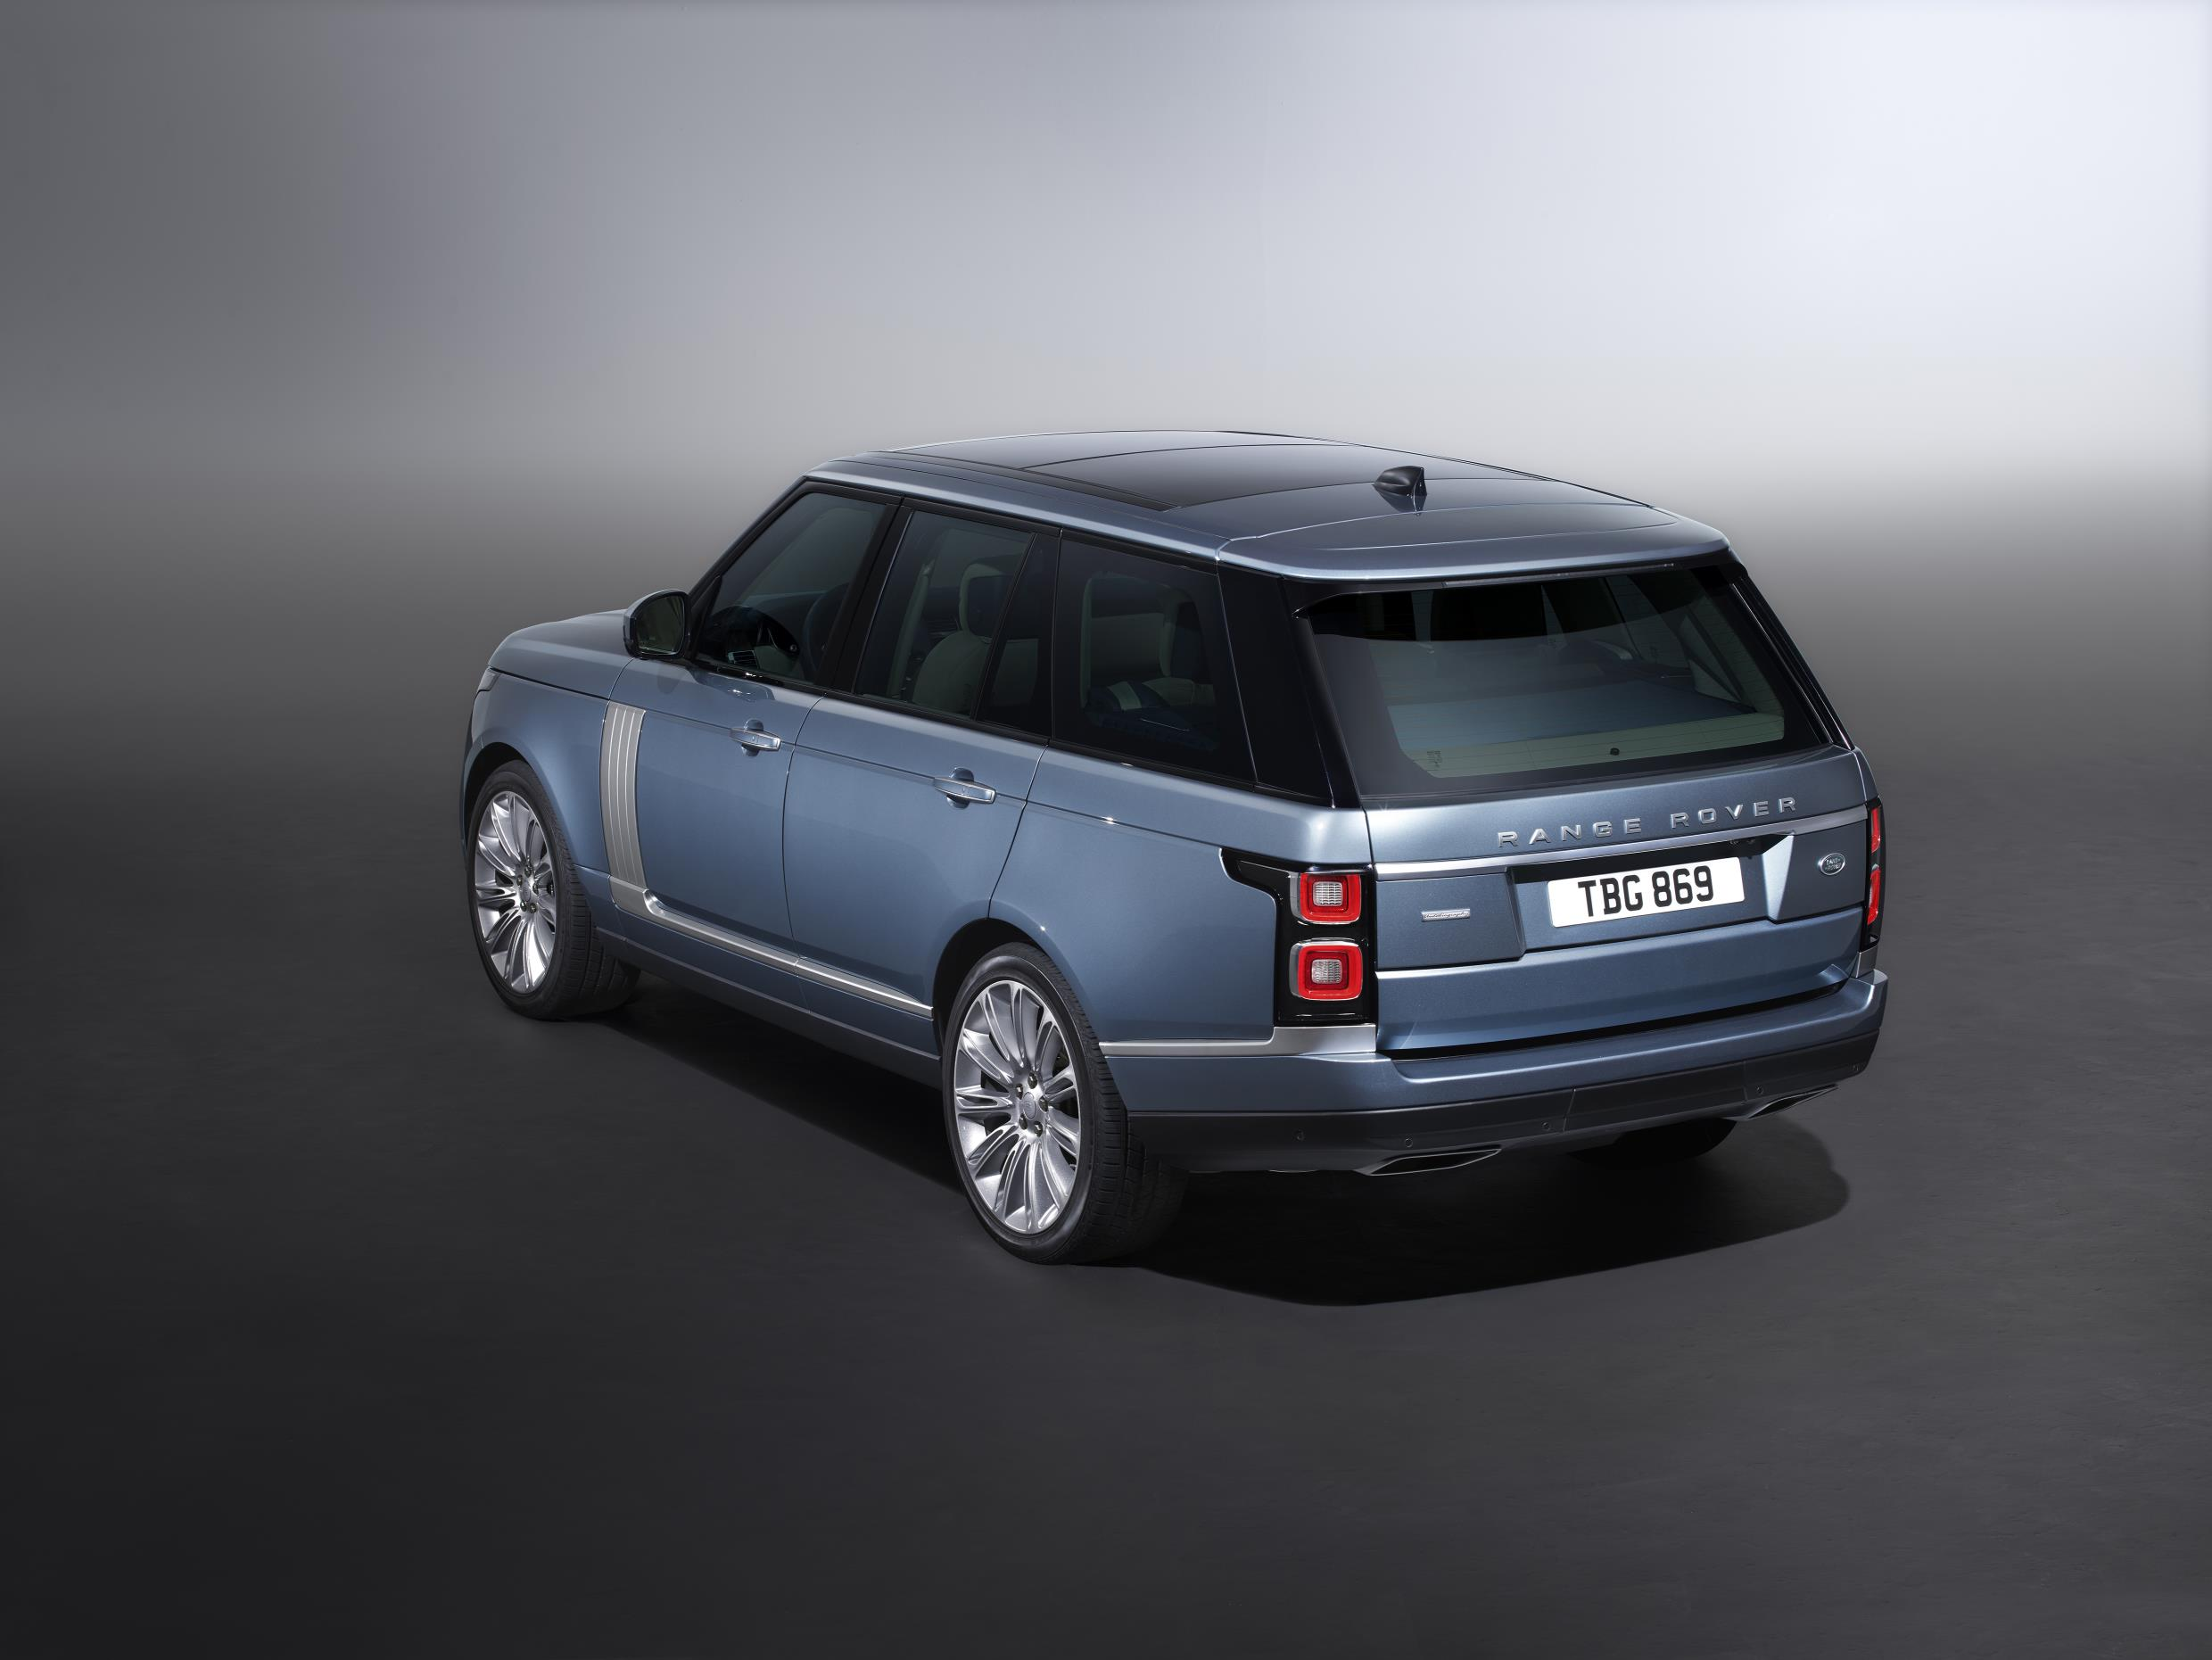 LAND ROVER ANNOUNCES 2018 RANGE ROVER AND 2019 PLUG-IN